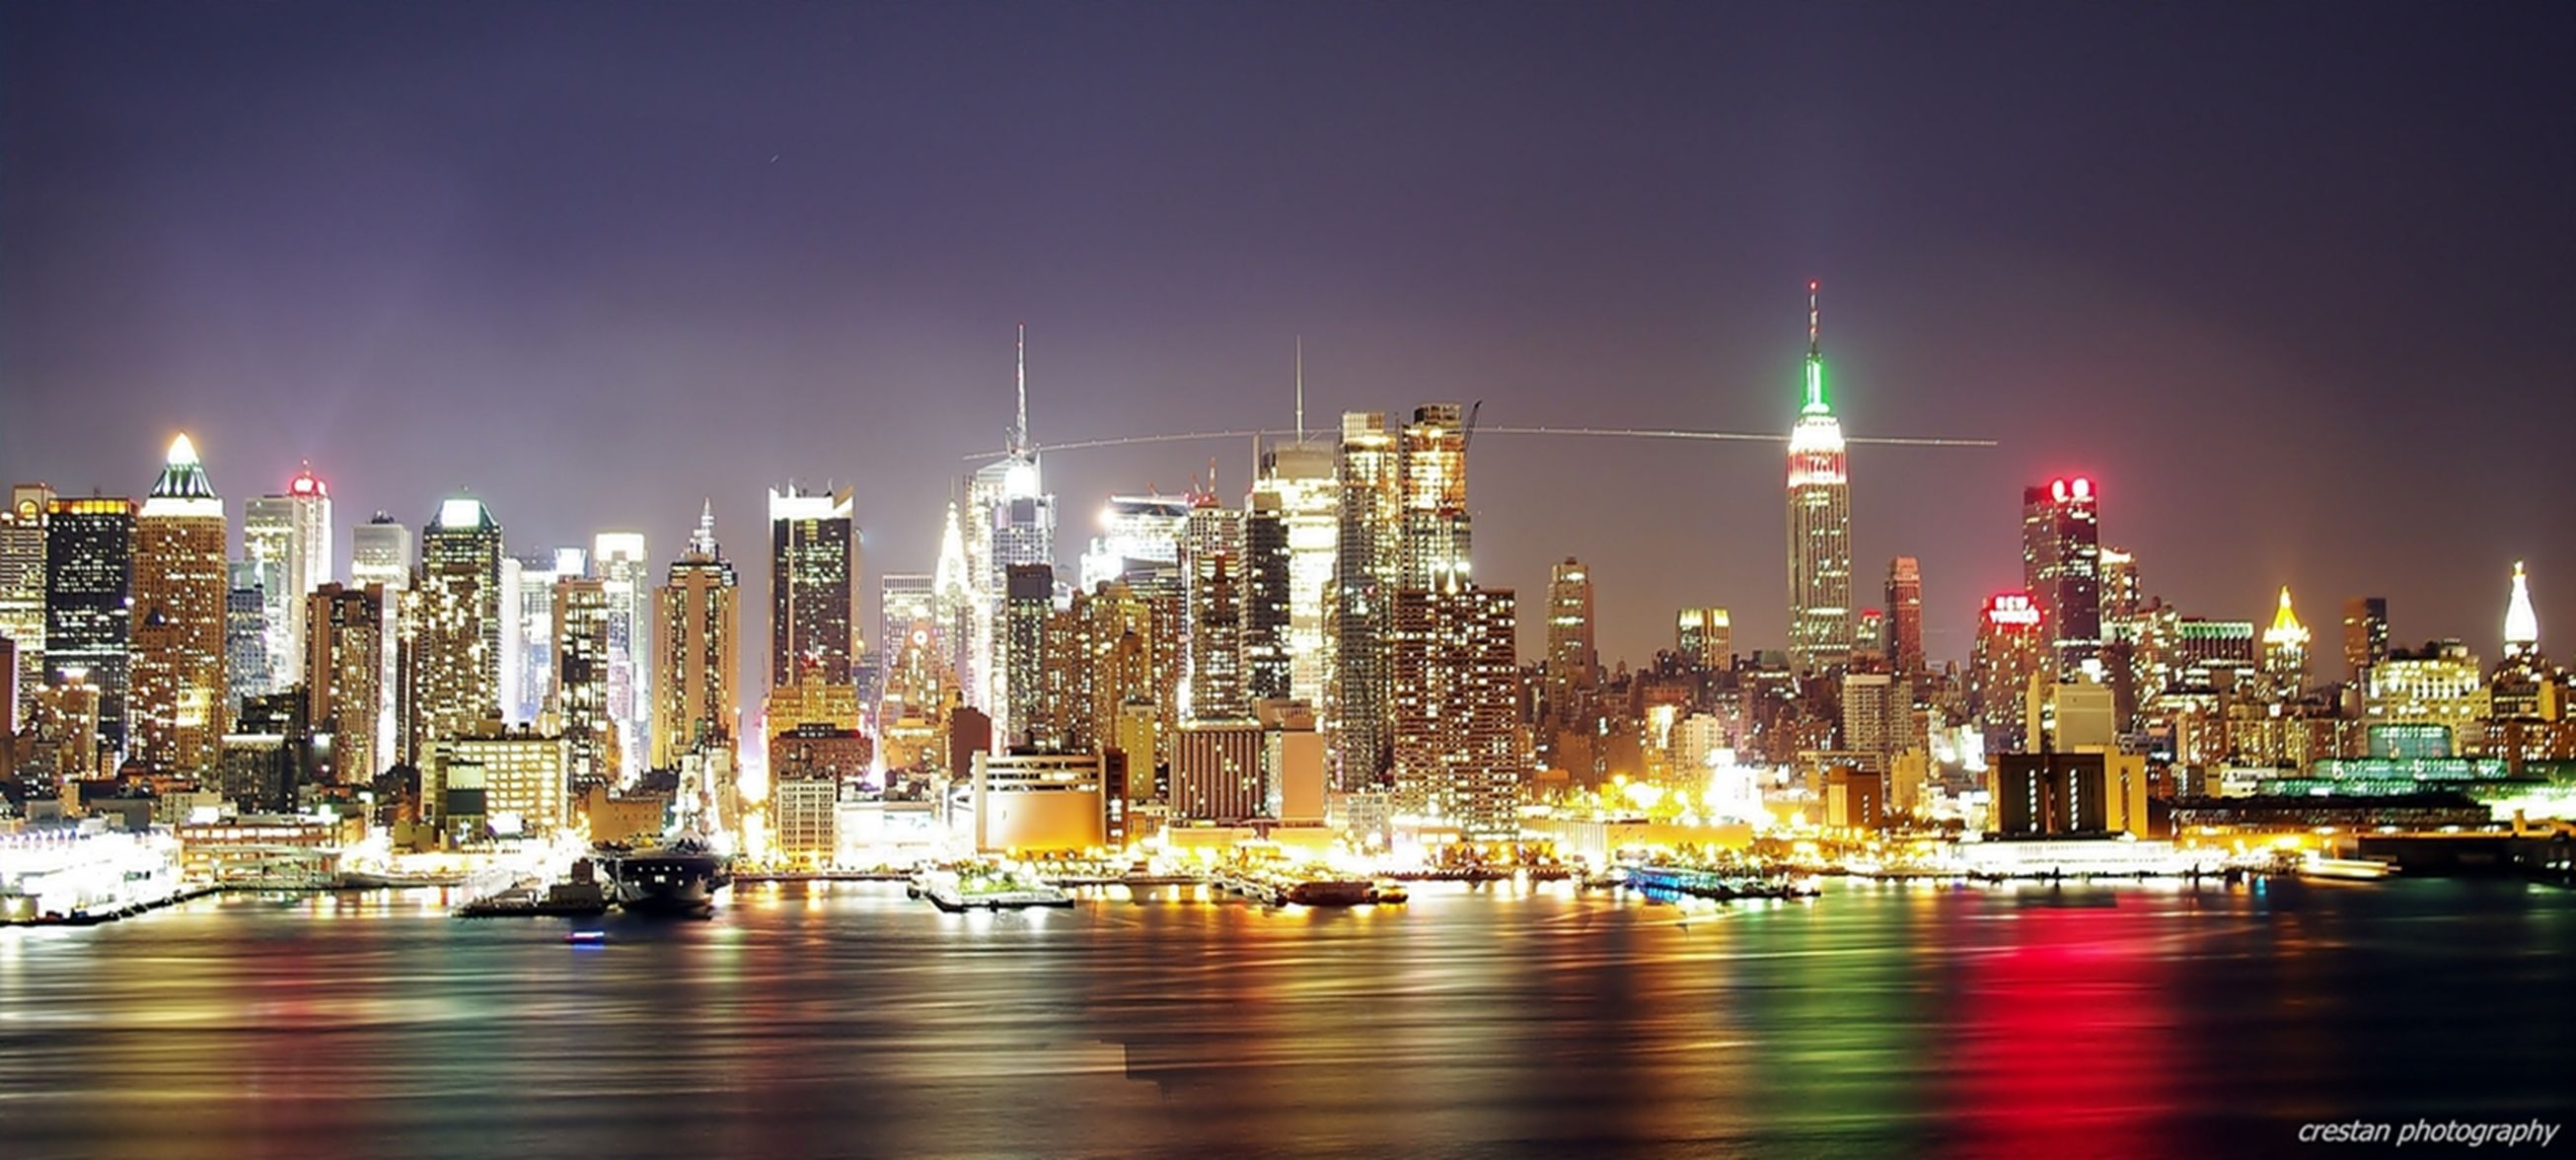 New york skyline kulas3vii 39 s photos night scene new for Places to see in nyc at night